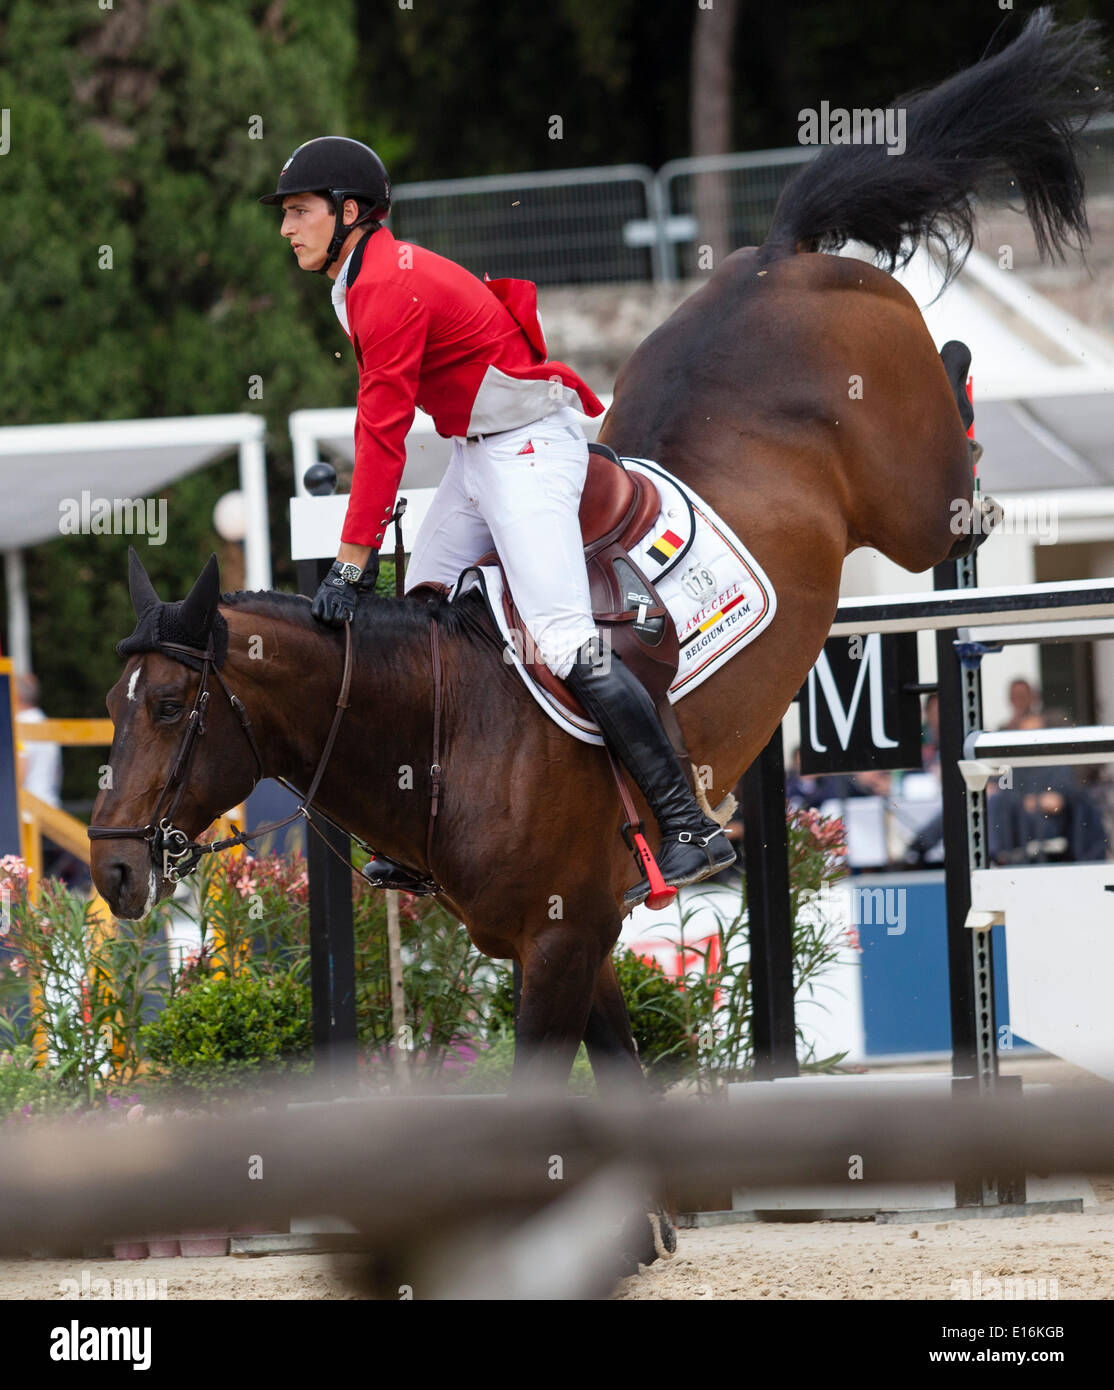 Nicola Philipaerts of Belgium riding Forever d'Arco ter Linden. in the Furusiyya FEI Nations Cup show jumping event Stock Photo